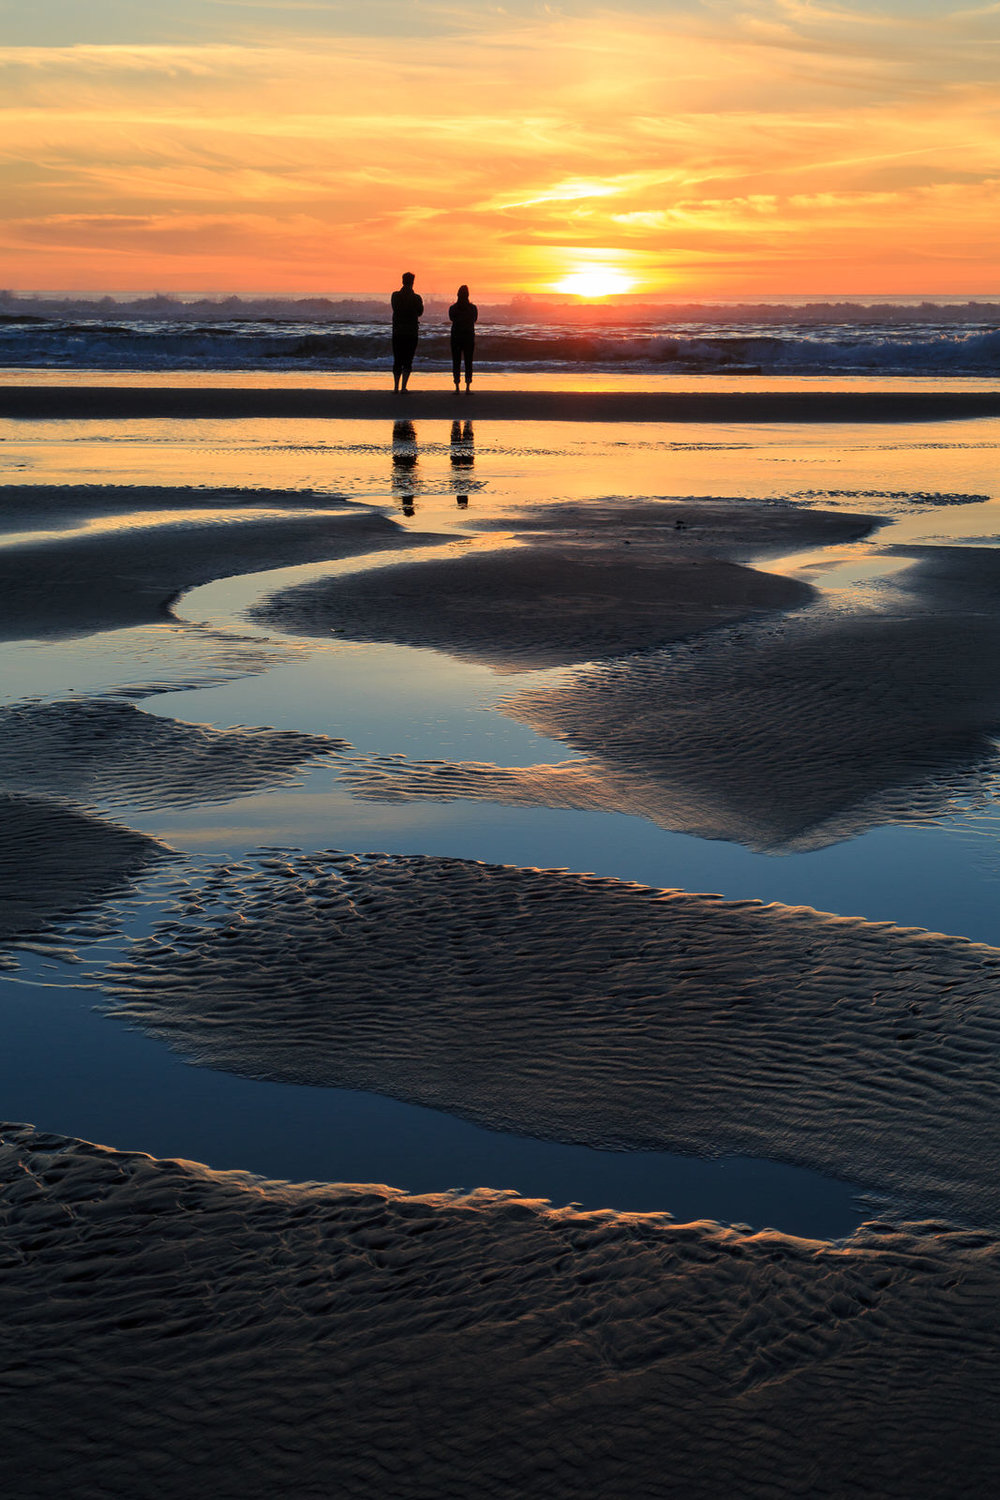 Sunset reflection on the beach at Manzanita